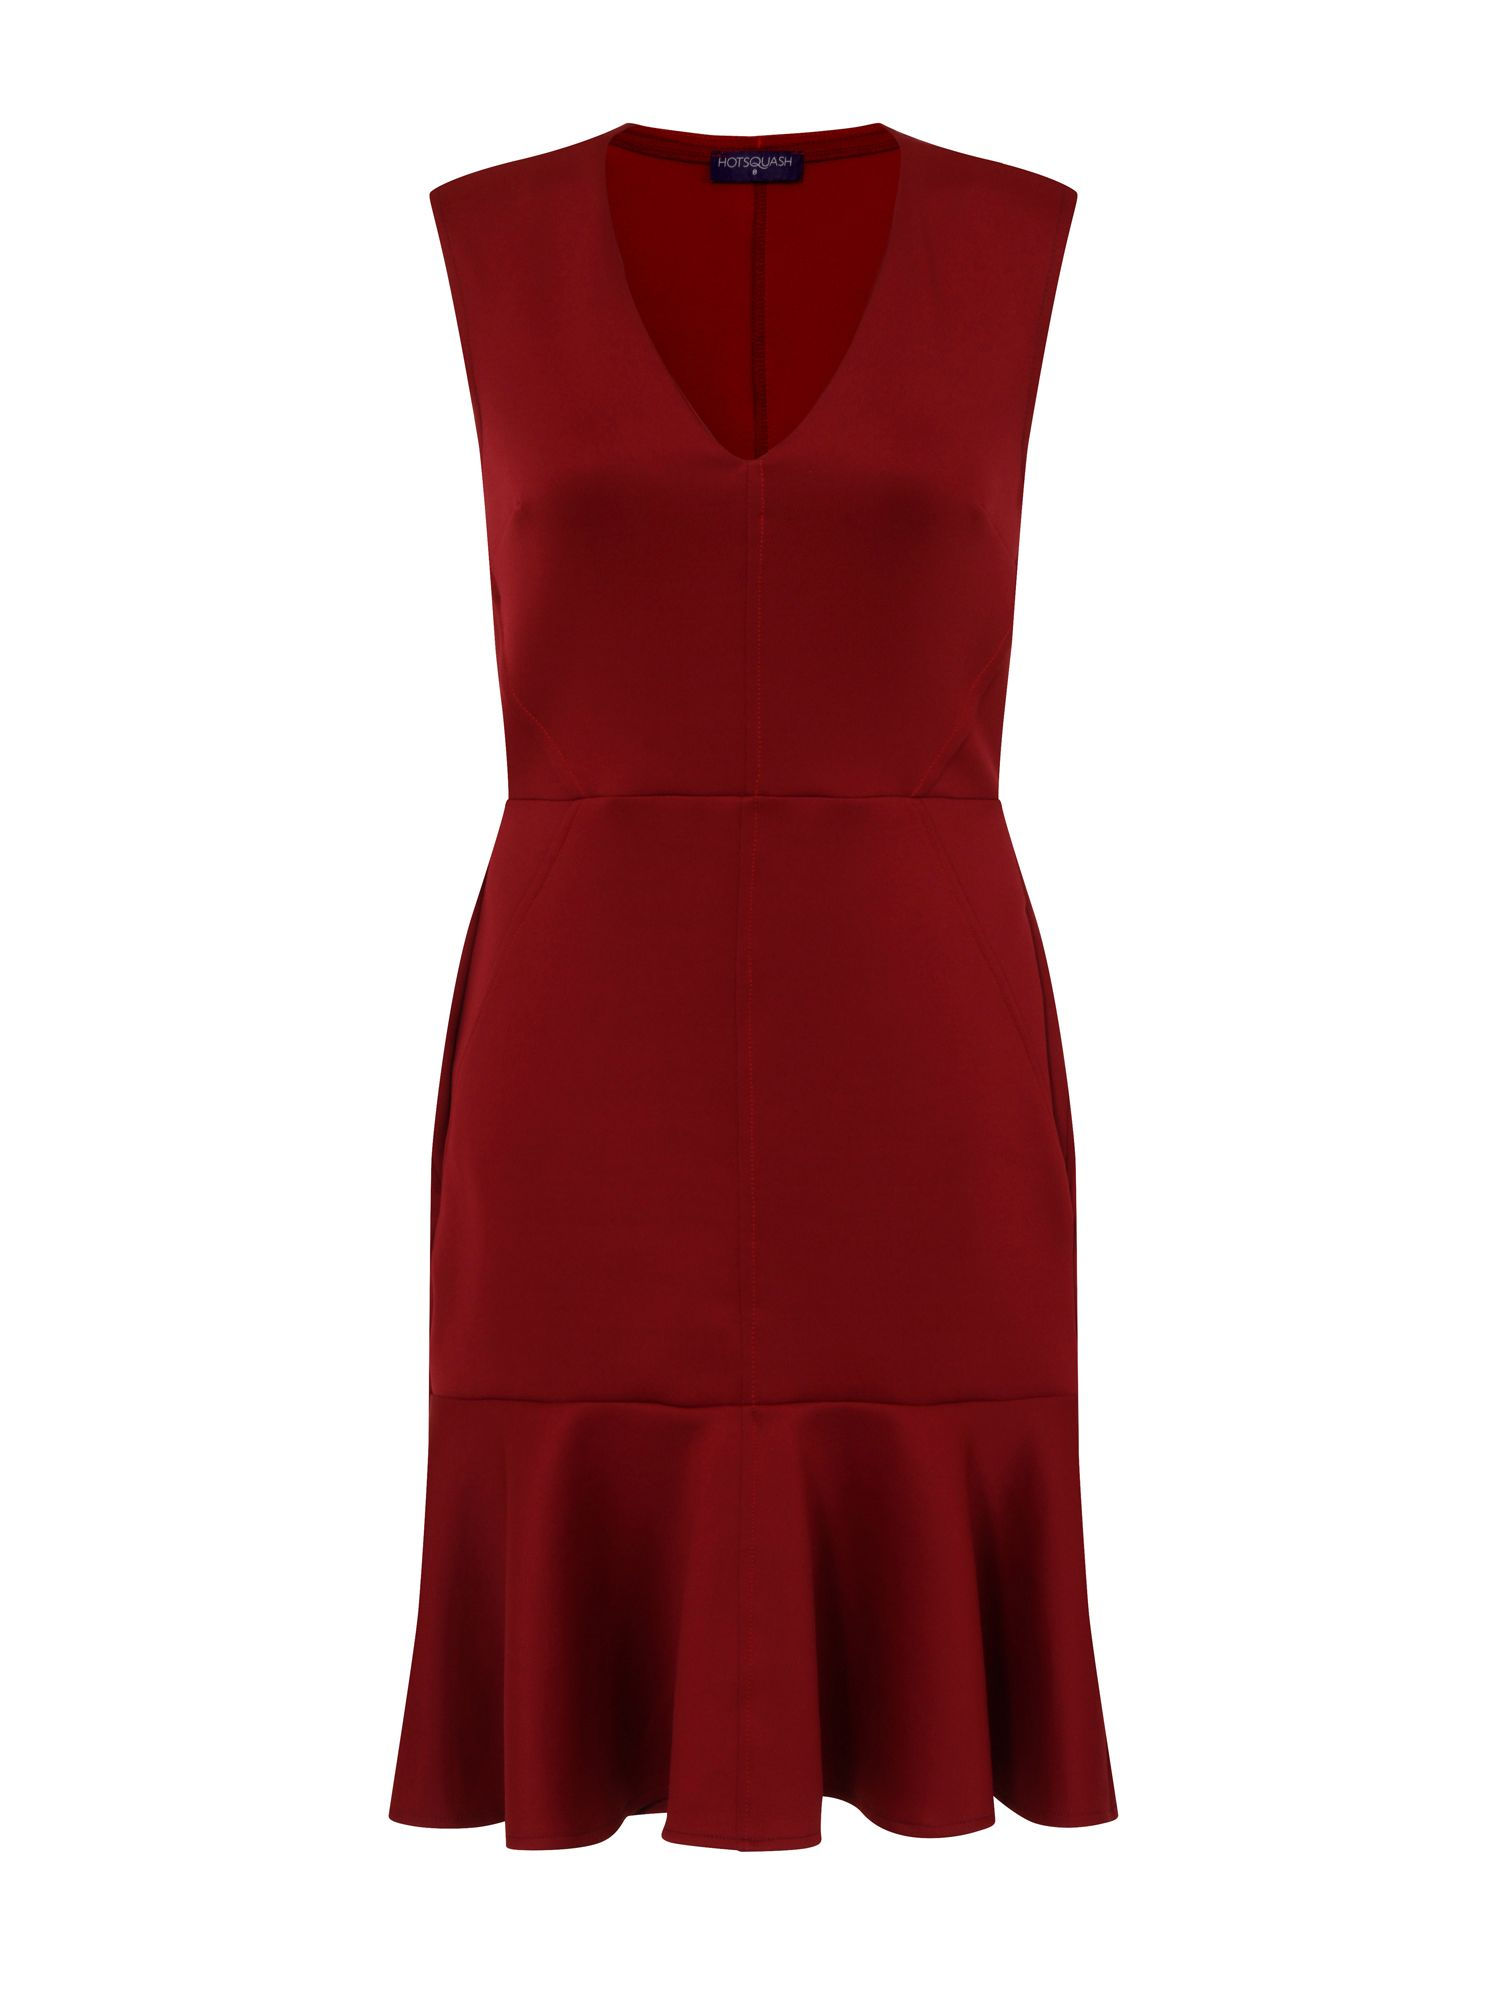 HotSquash Drop Waist Ponte Dress in Clever Fabric, Red